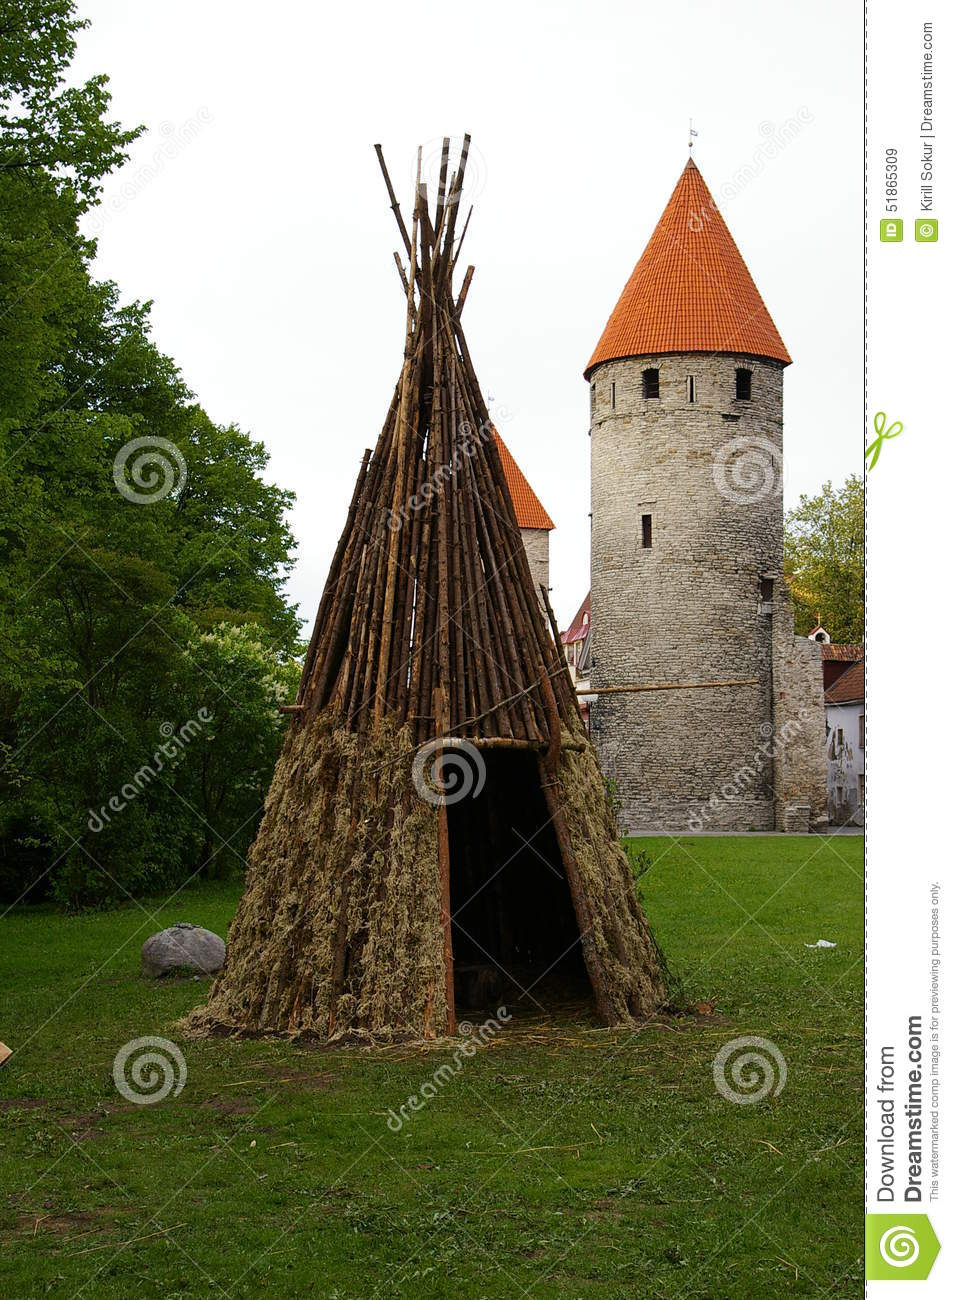 tipi en bois pr s des murs de la forteresse m di vale. Black Bedroom Furniture Sets. Home Design Ideas